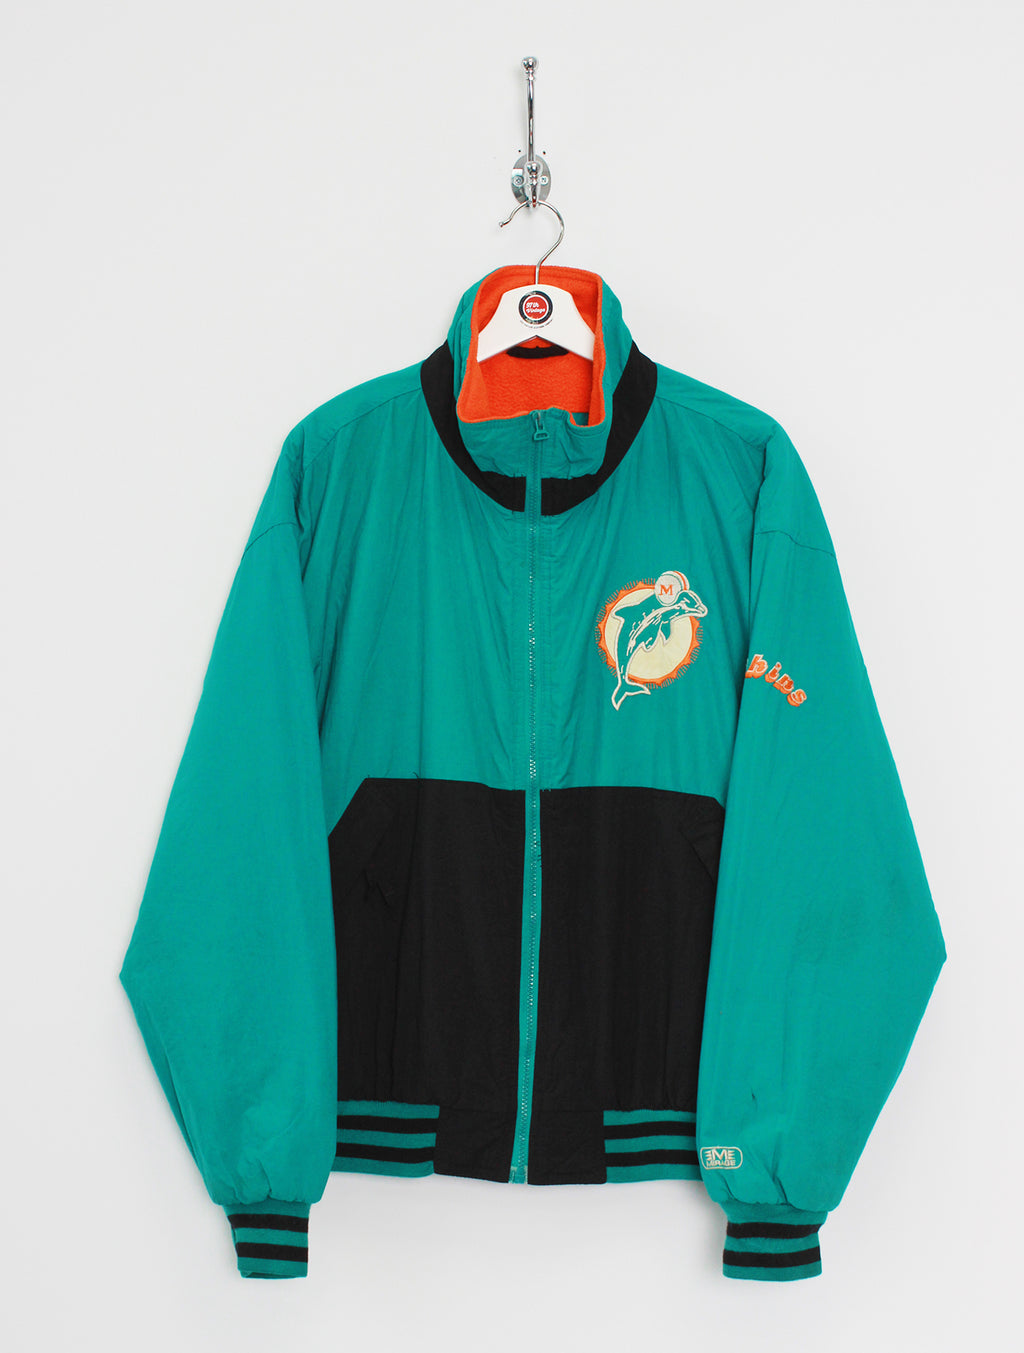 Miami Dolphins Fleece Coat (L)